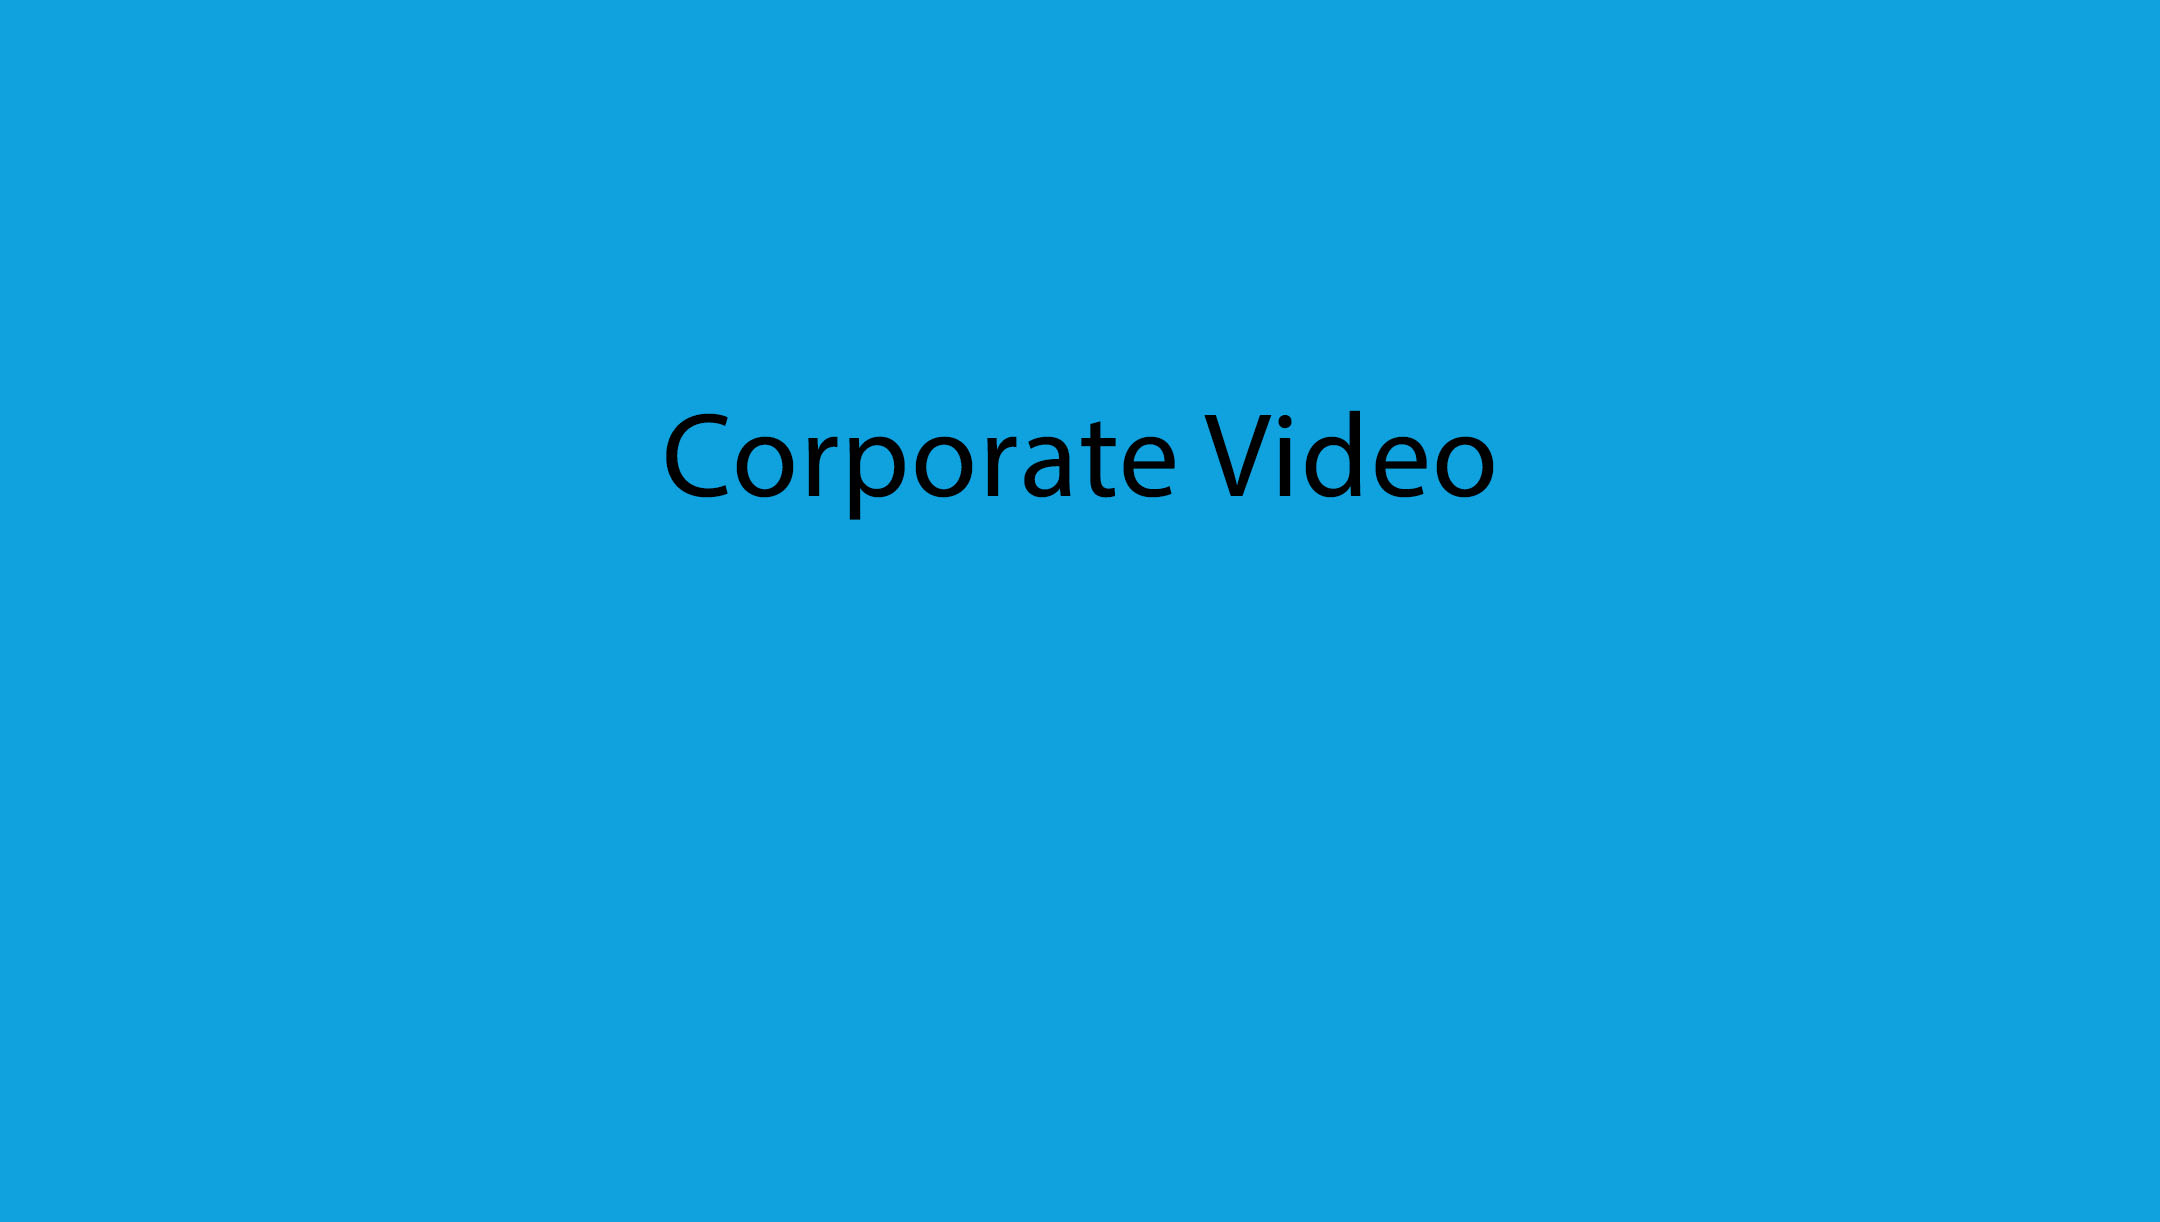 corporate video text